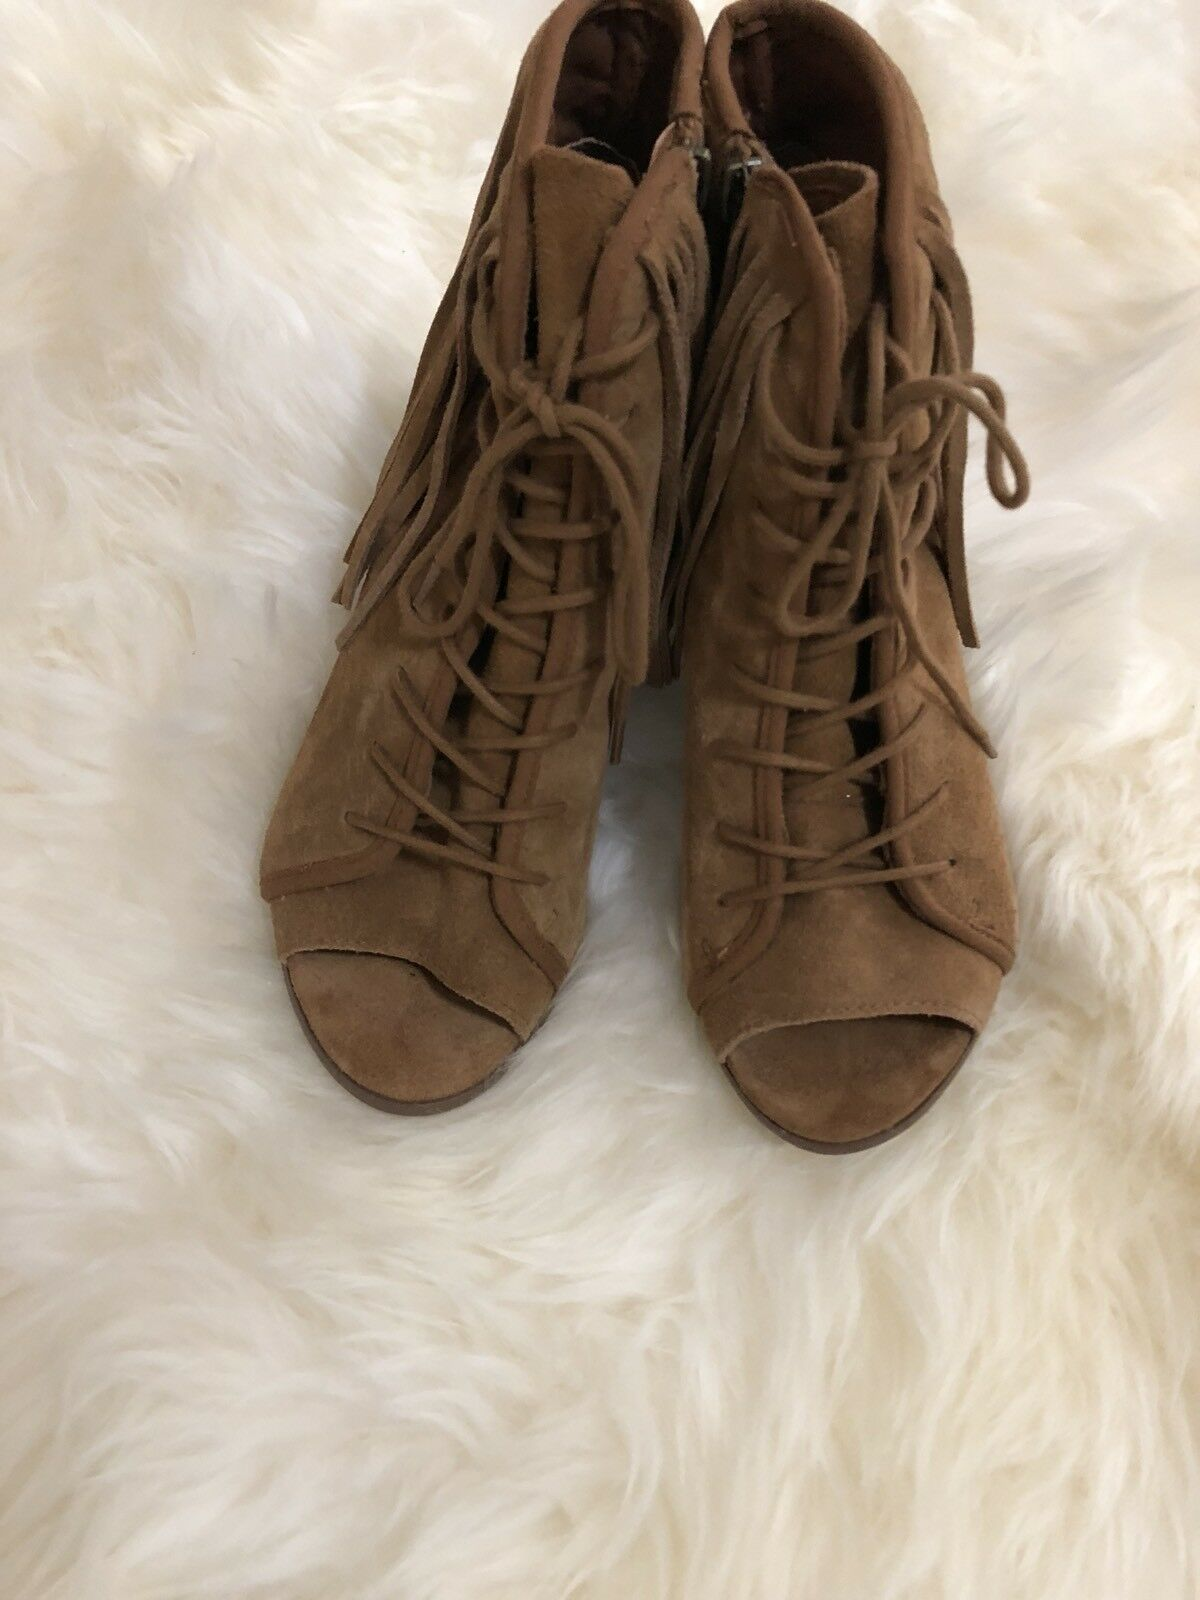 Steve Madden Womens Newporte Leather Peep Toe Ankle, Chestnut Suede, Size 7